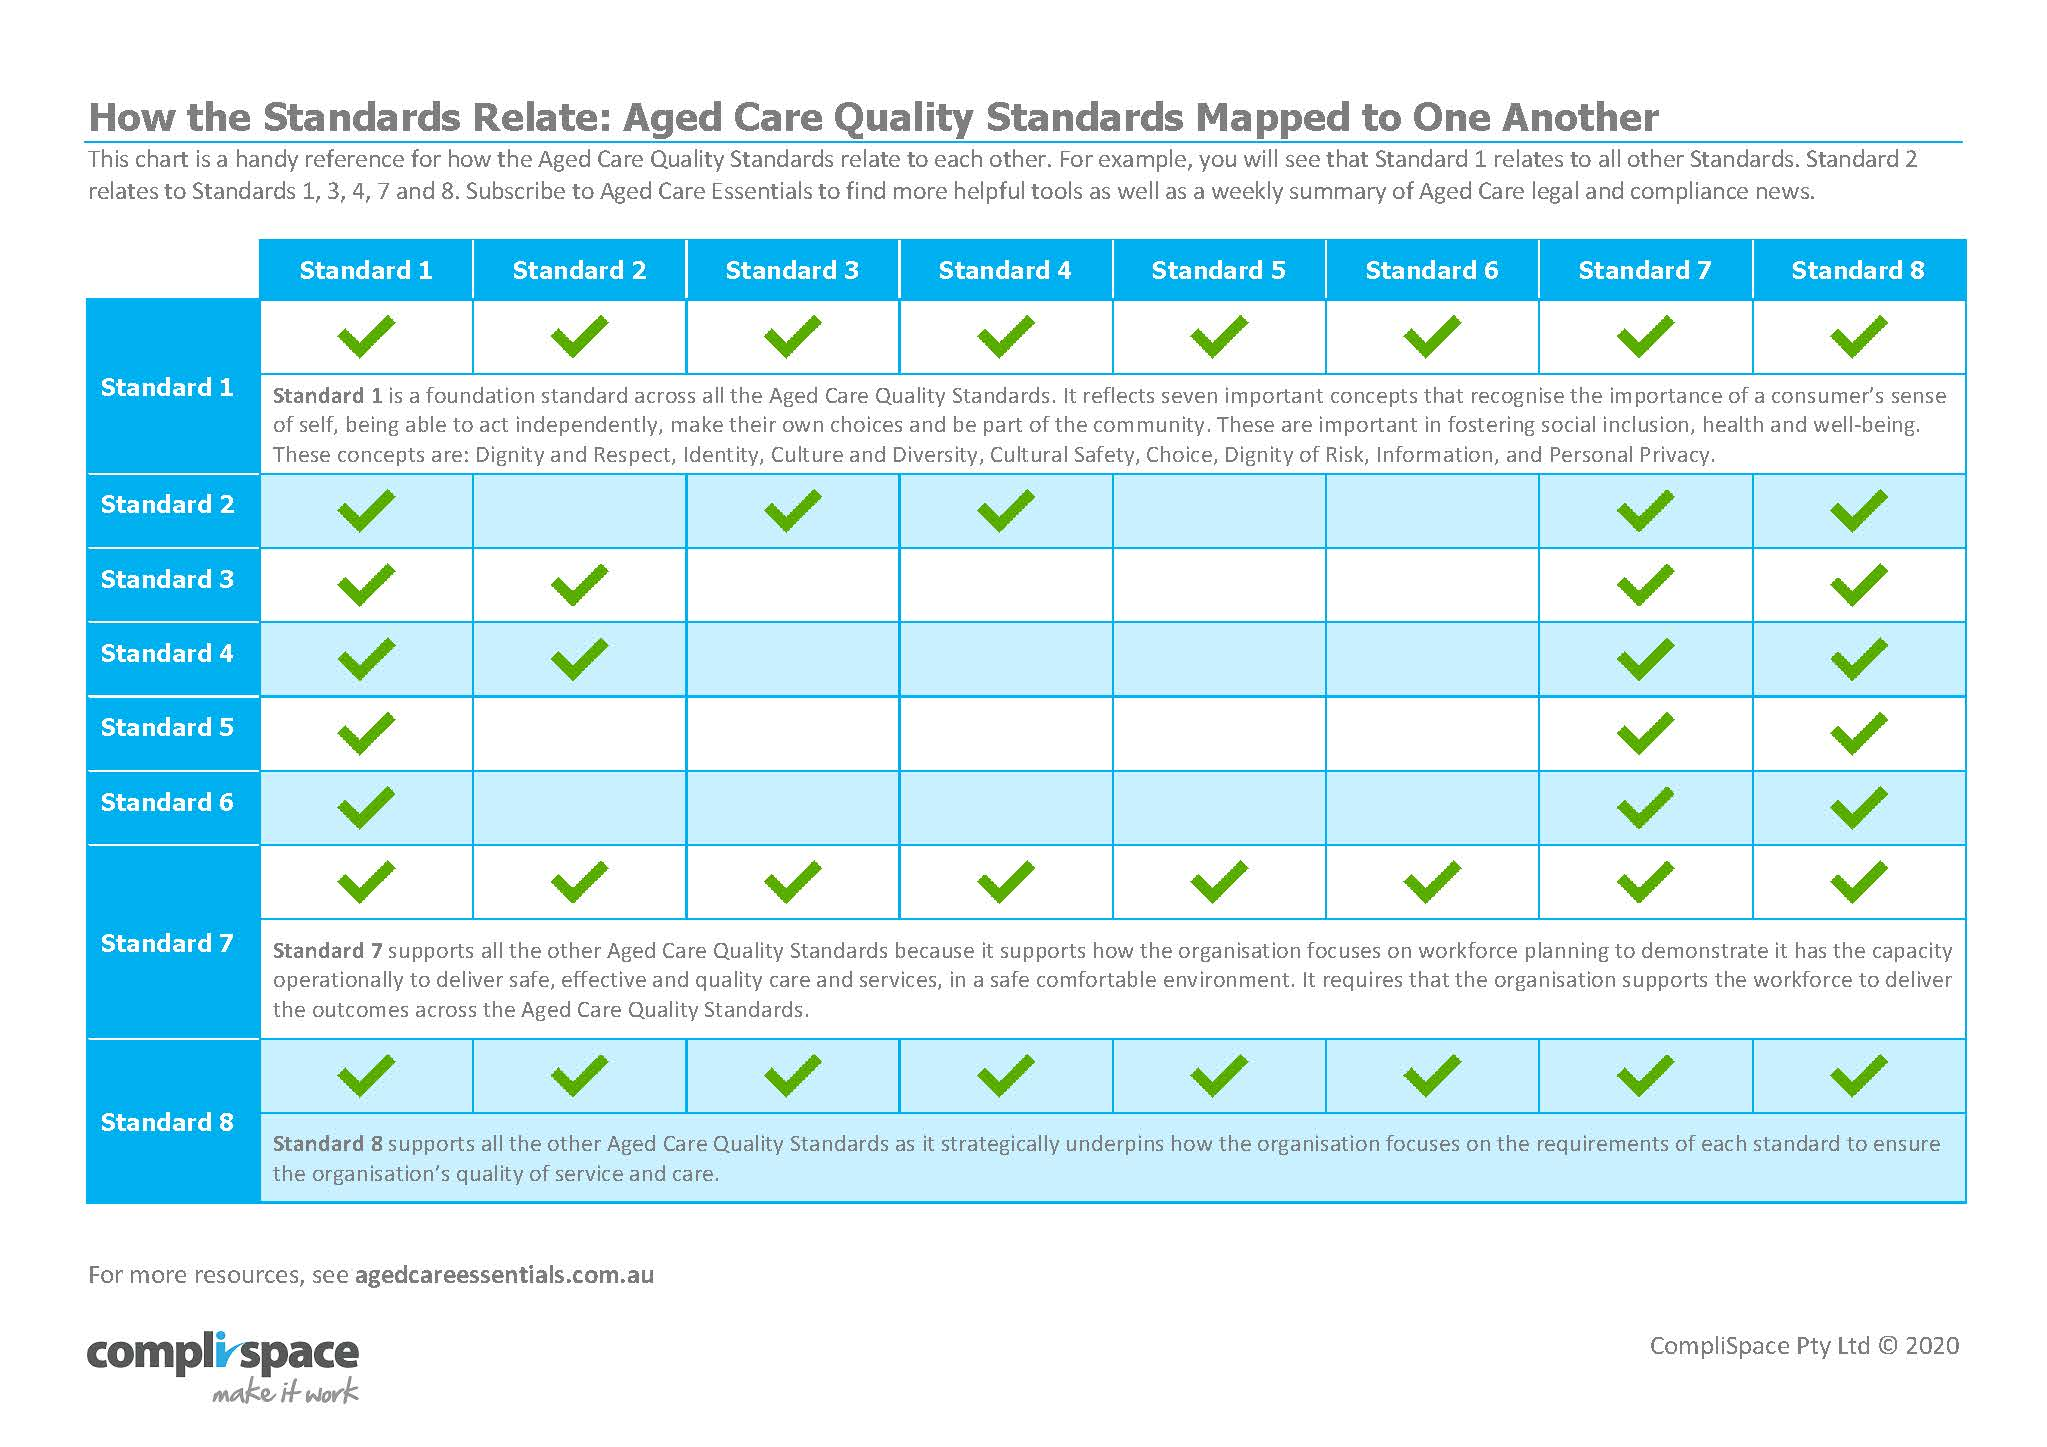 Mapping Standards to Other Standards 2